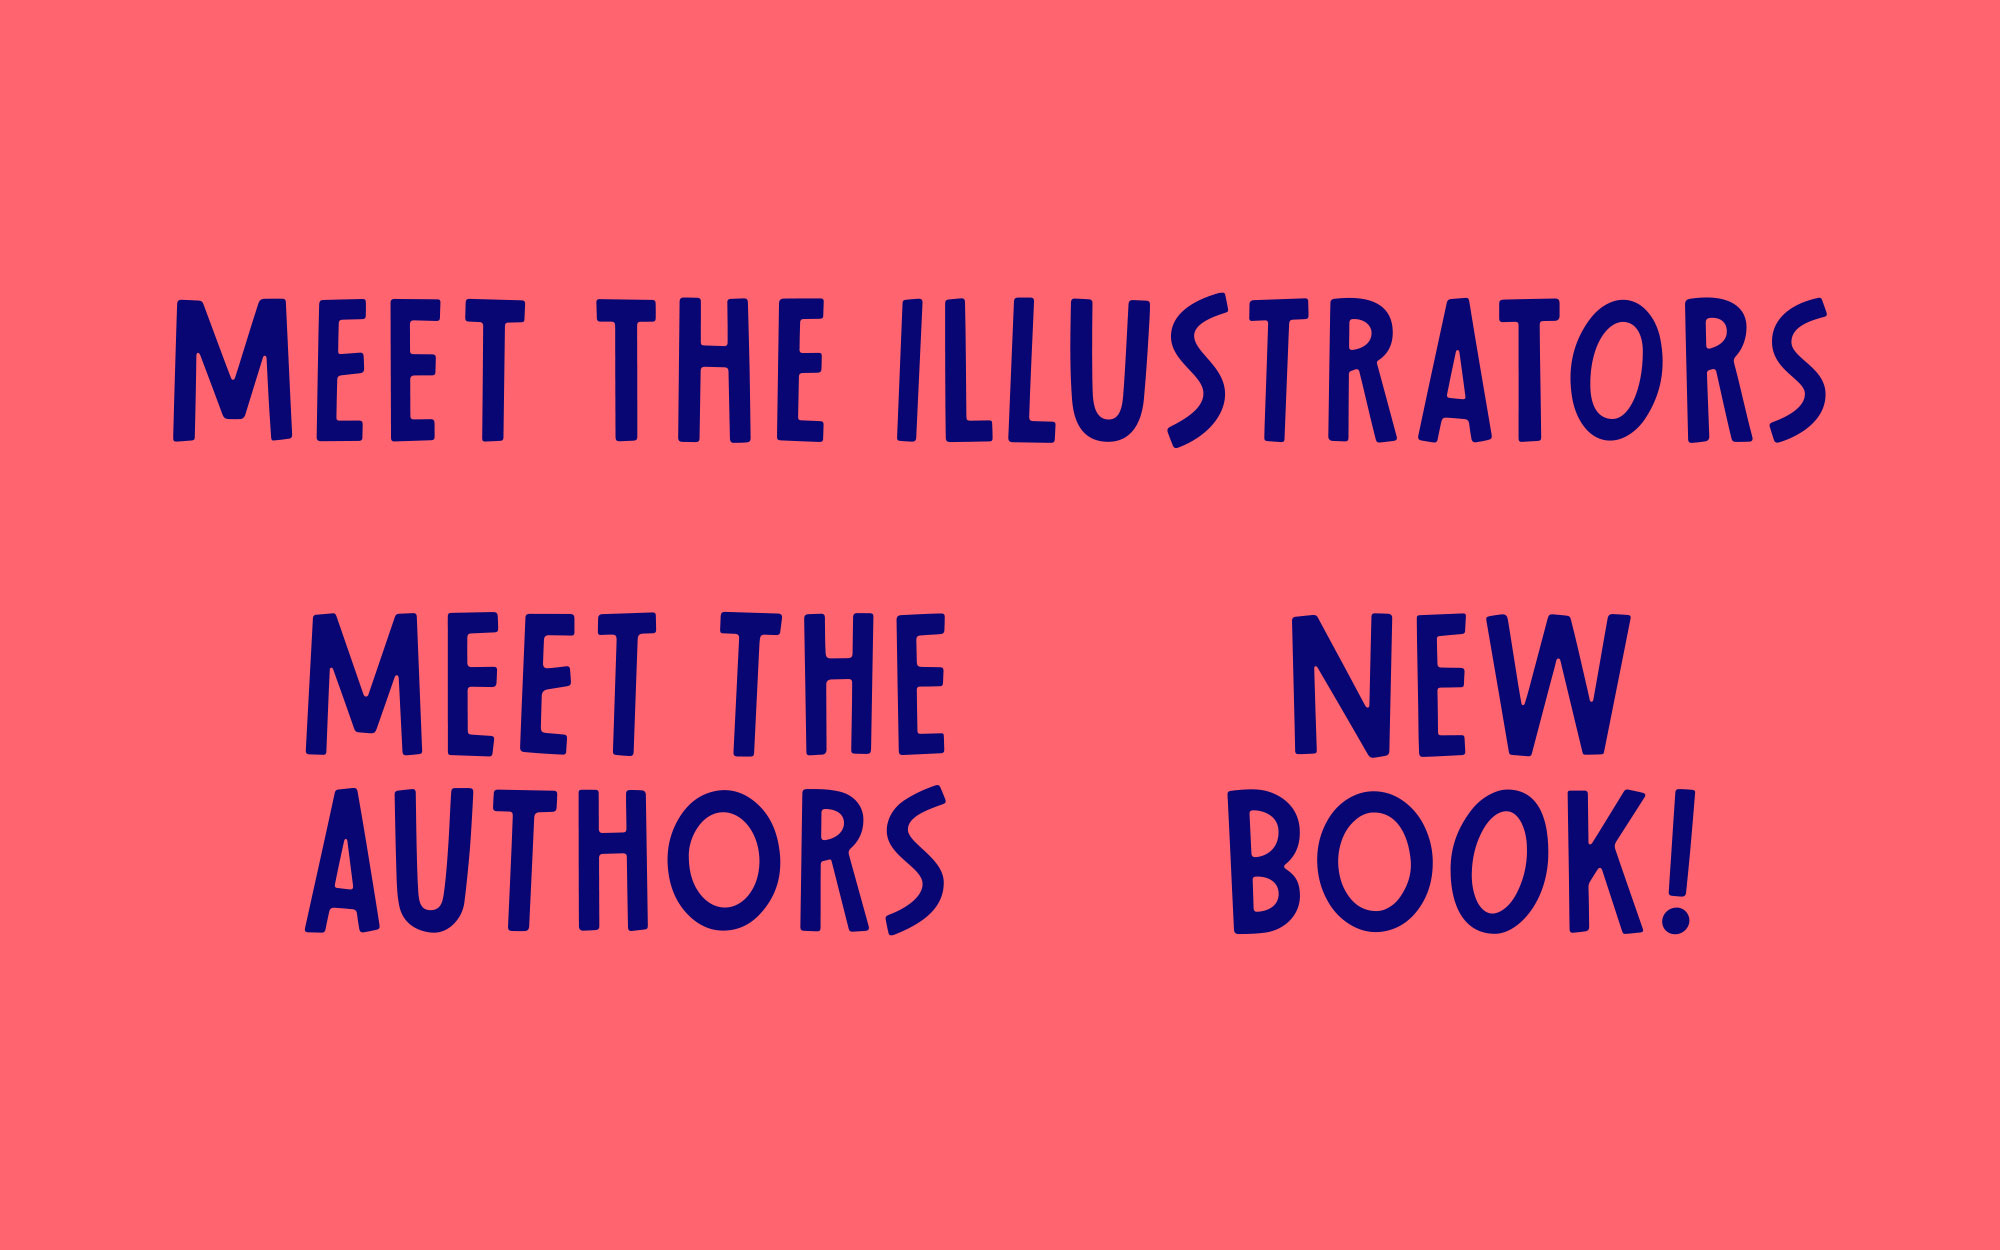 """Three phrases I hand-lettered in the style of the Neon Squid logo. They read """"Meet the Illustrators"""", """"Meet the Authors"""" and """"New Book!""""."""